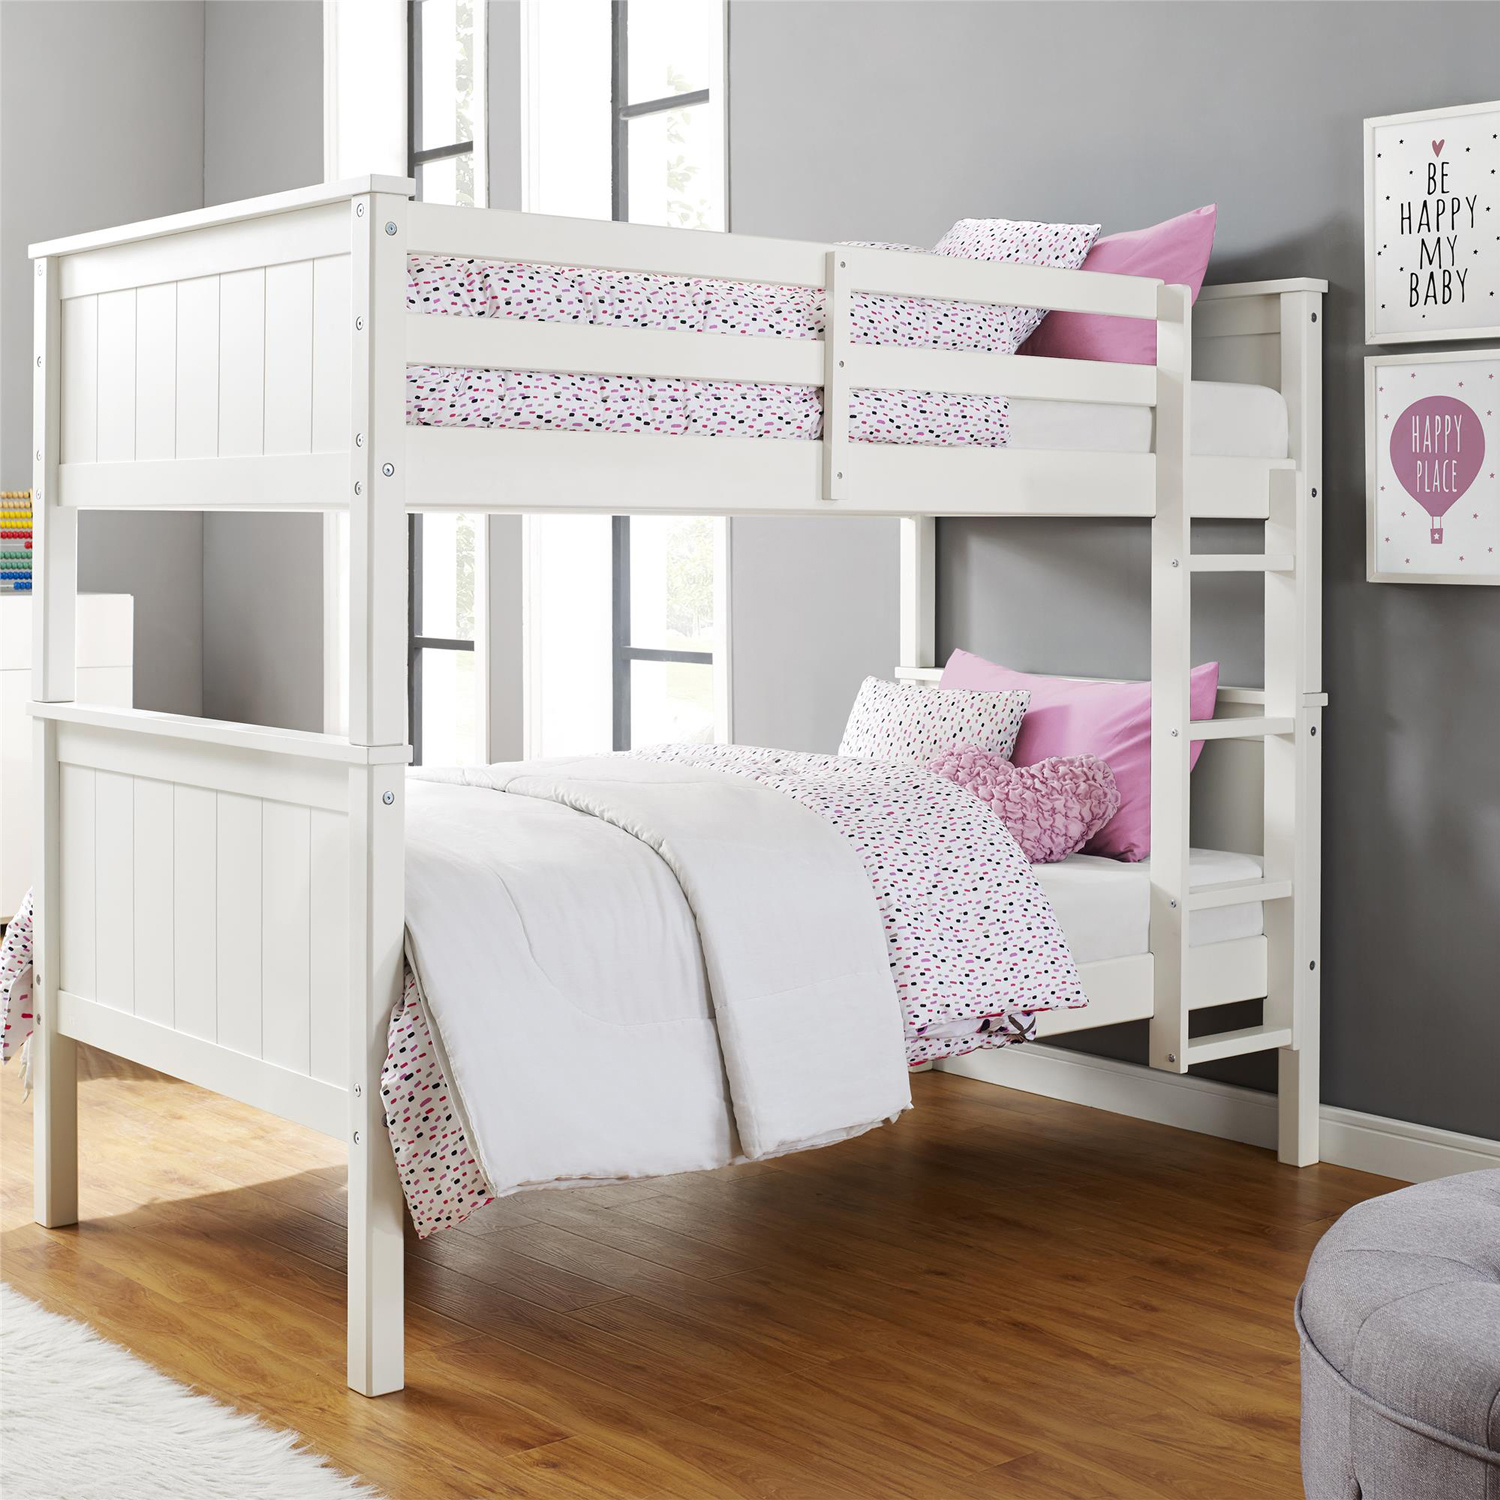 Better Homes and Gardens Ashcreek Twin Bunk Bed, Multiple Colors